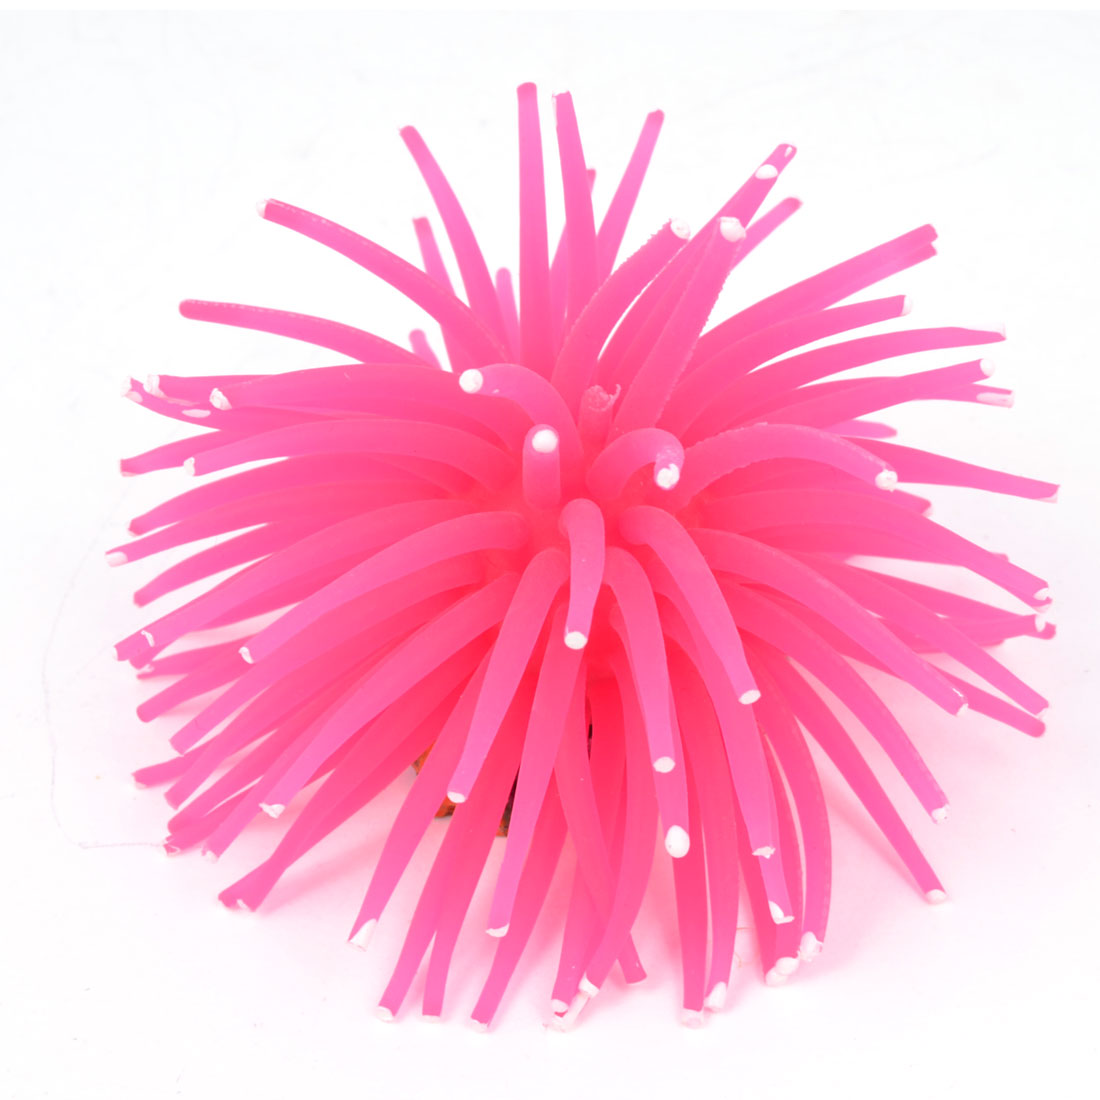 Aquarium Tank Fuchsia Silicone Simulation Mini Sea Anemone Ornament